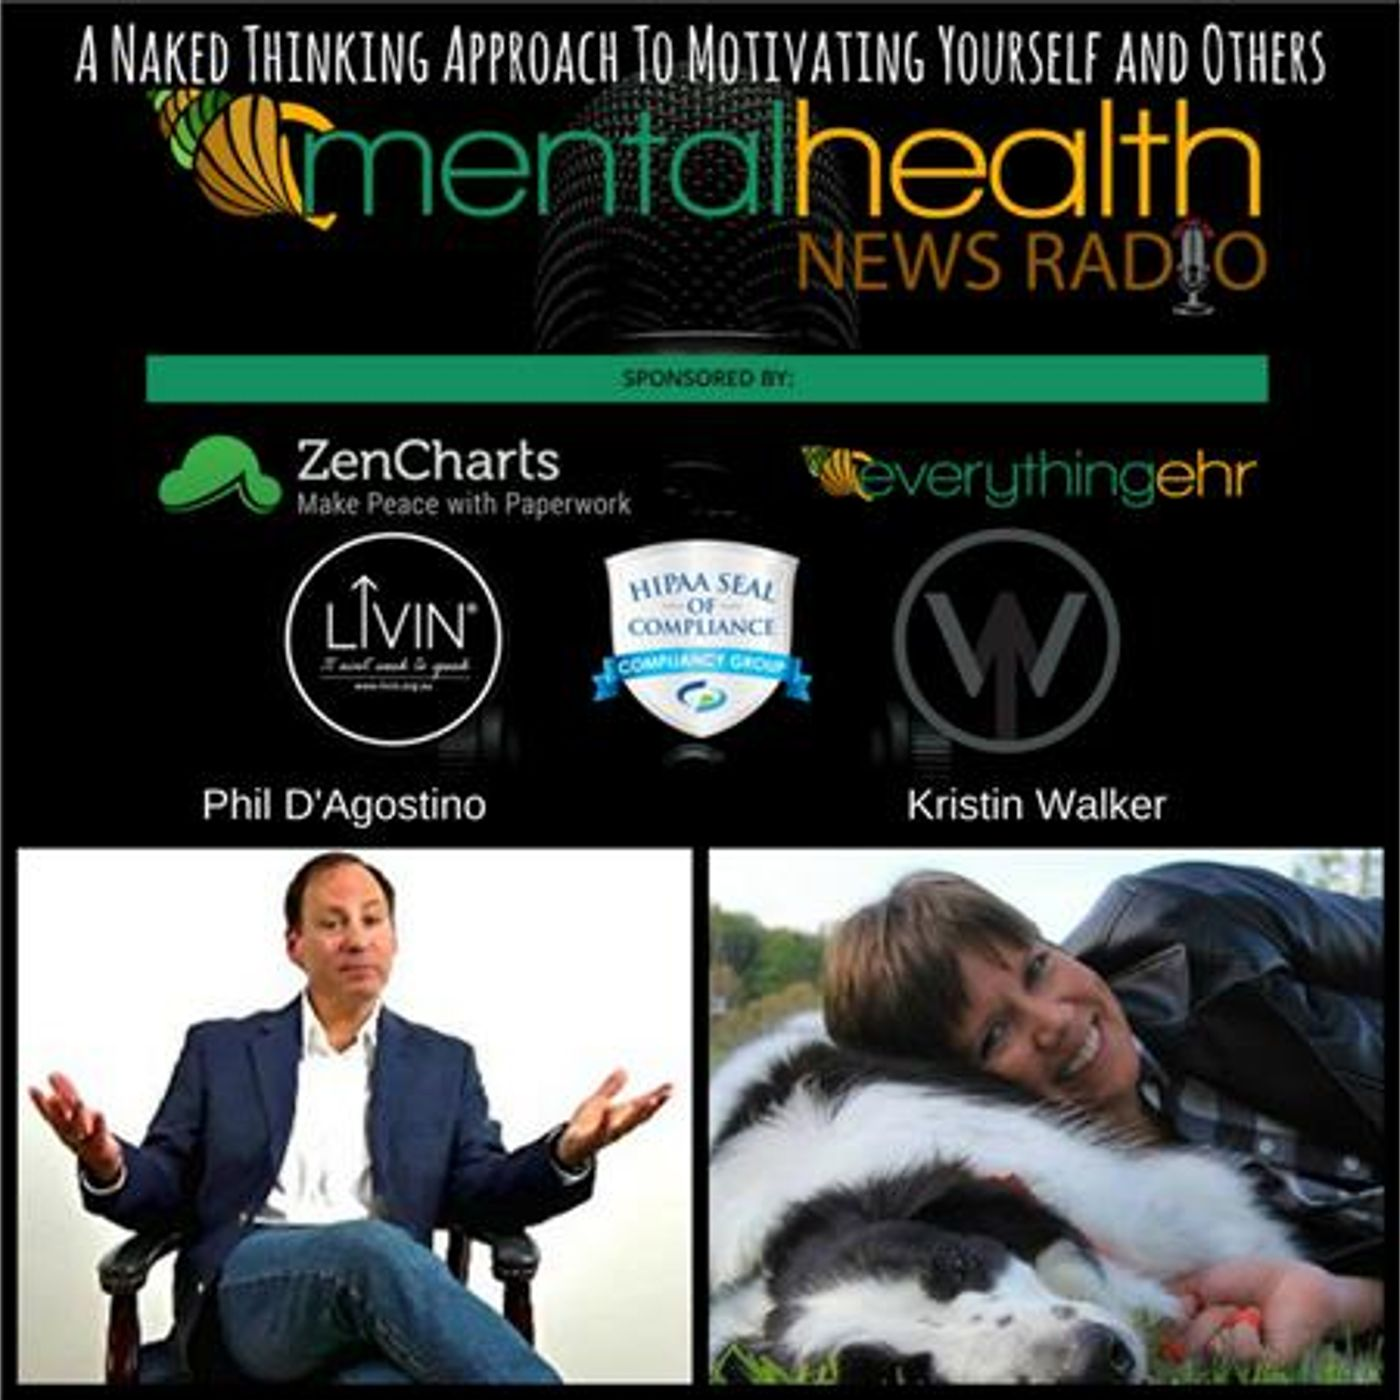 Mental Health News Radio - A Naked Thinking Approach To Motivating Yourself and Others